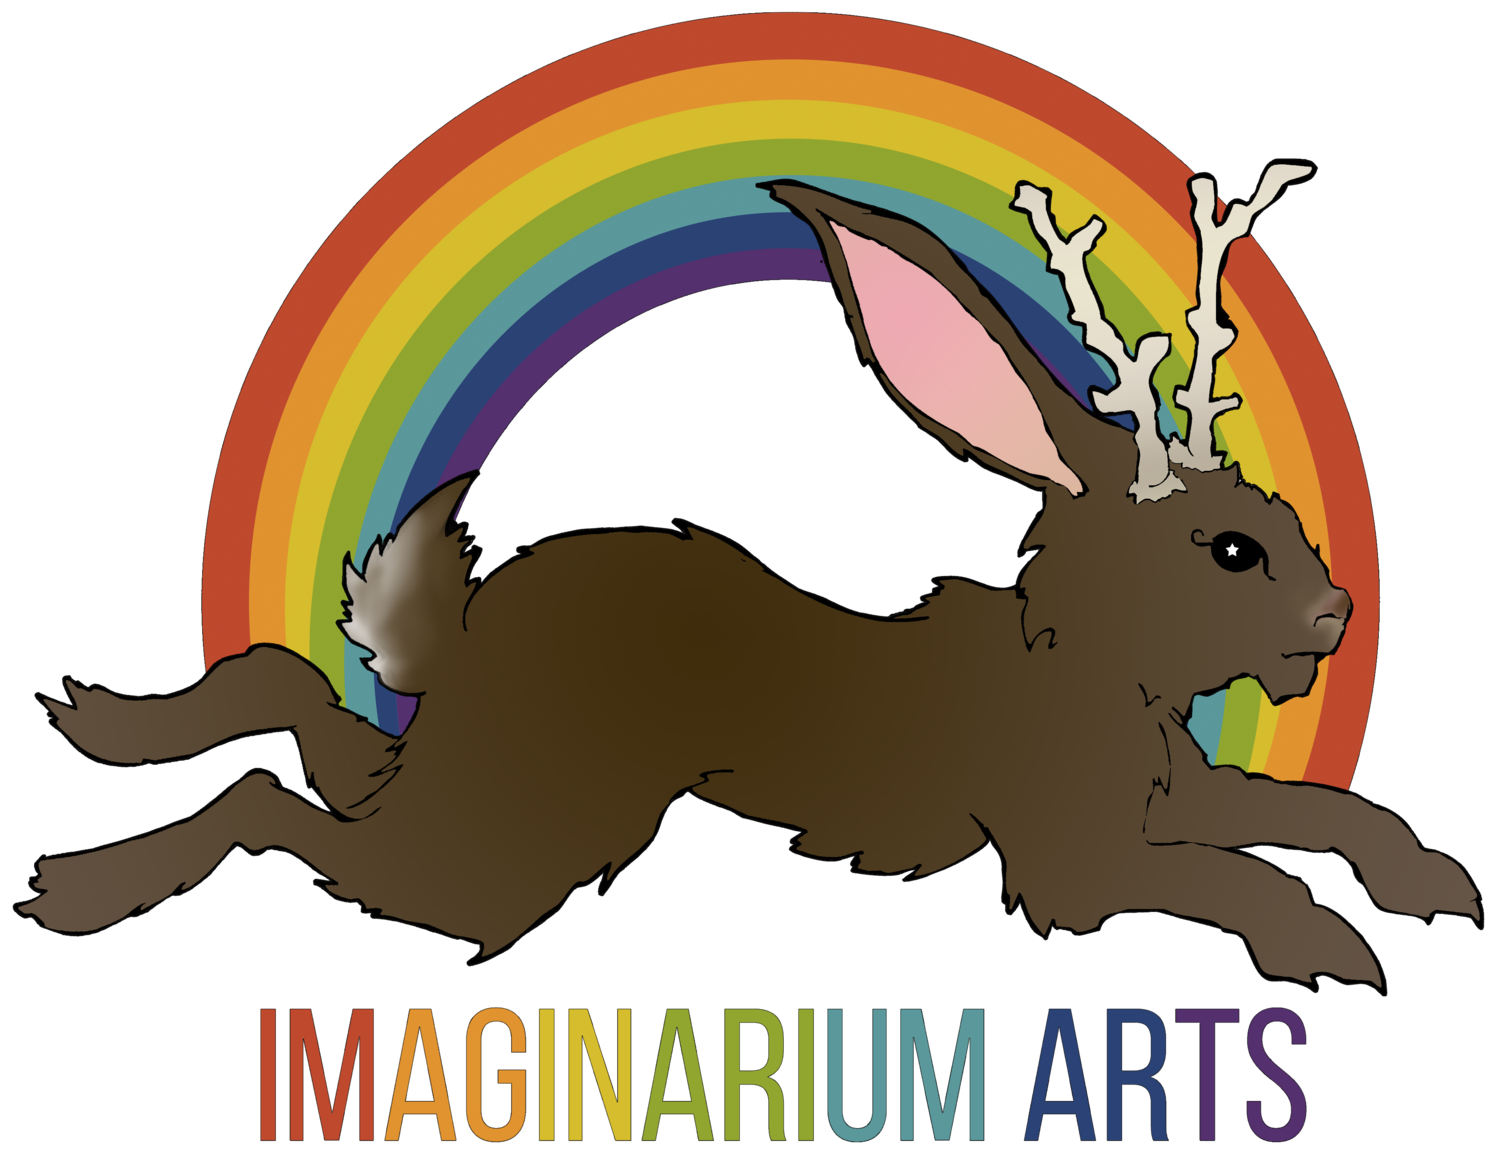 Imaginarium Arts